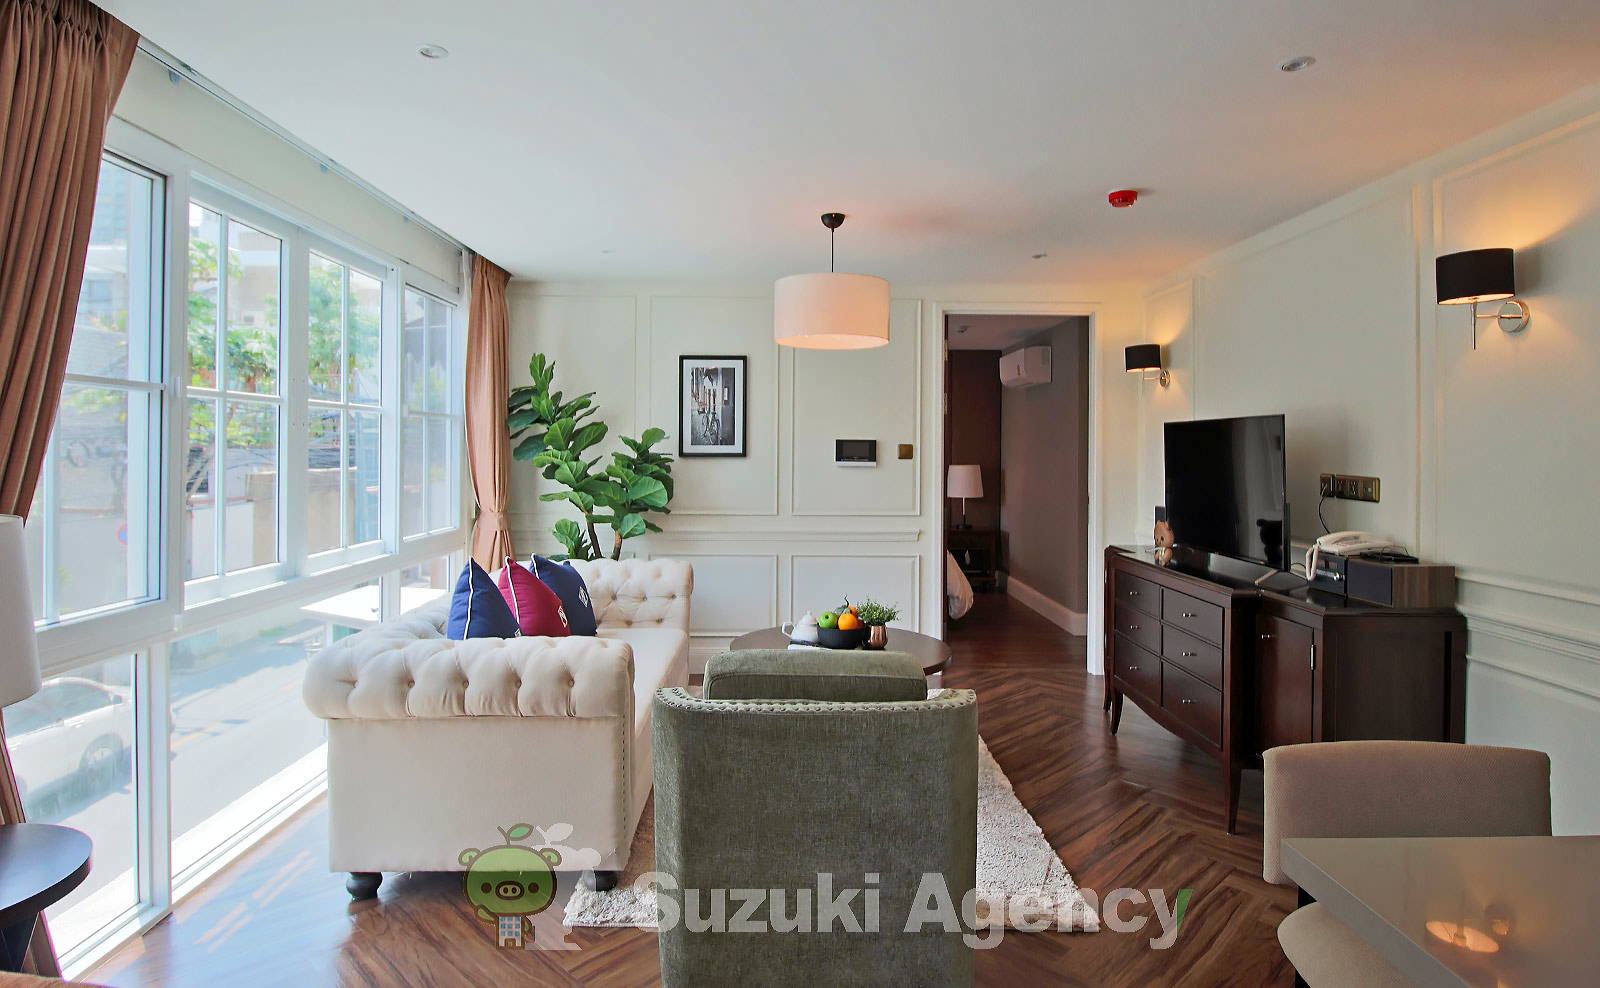 The Elite Thonglor 25:2Bed Room Photos No.1